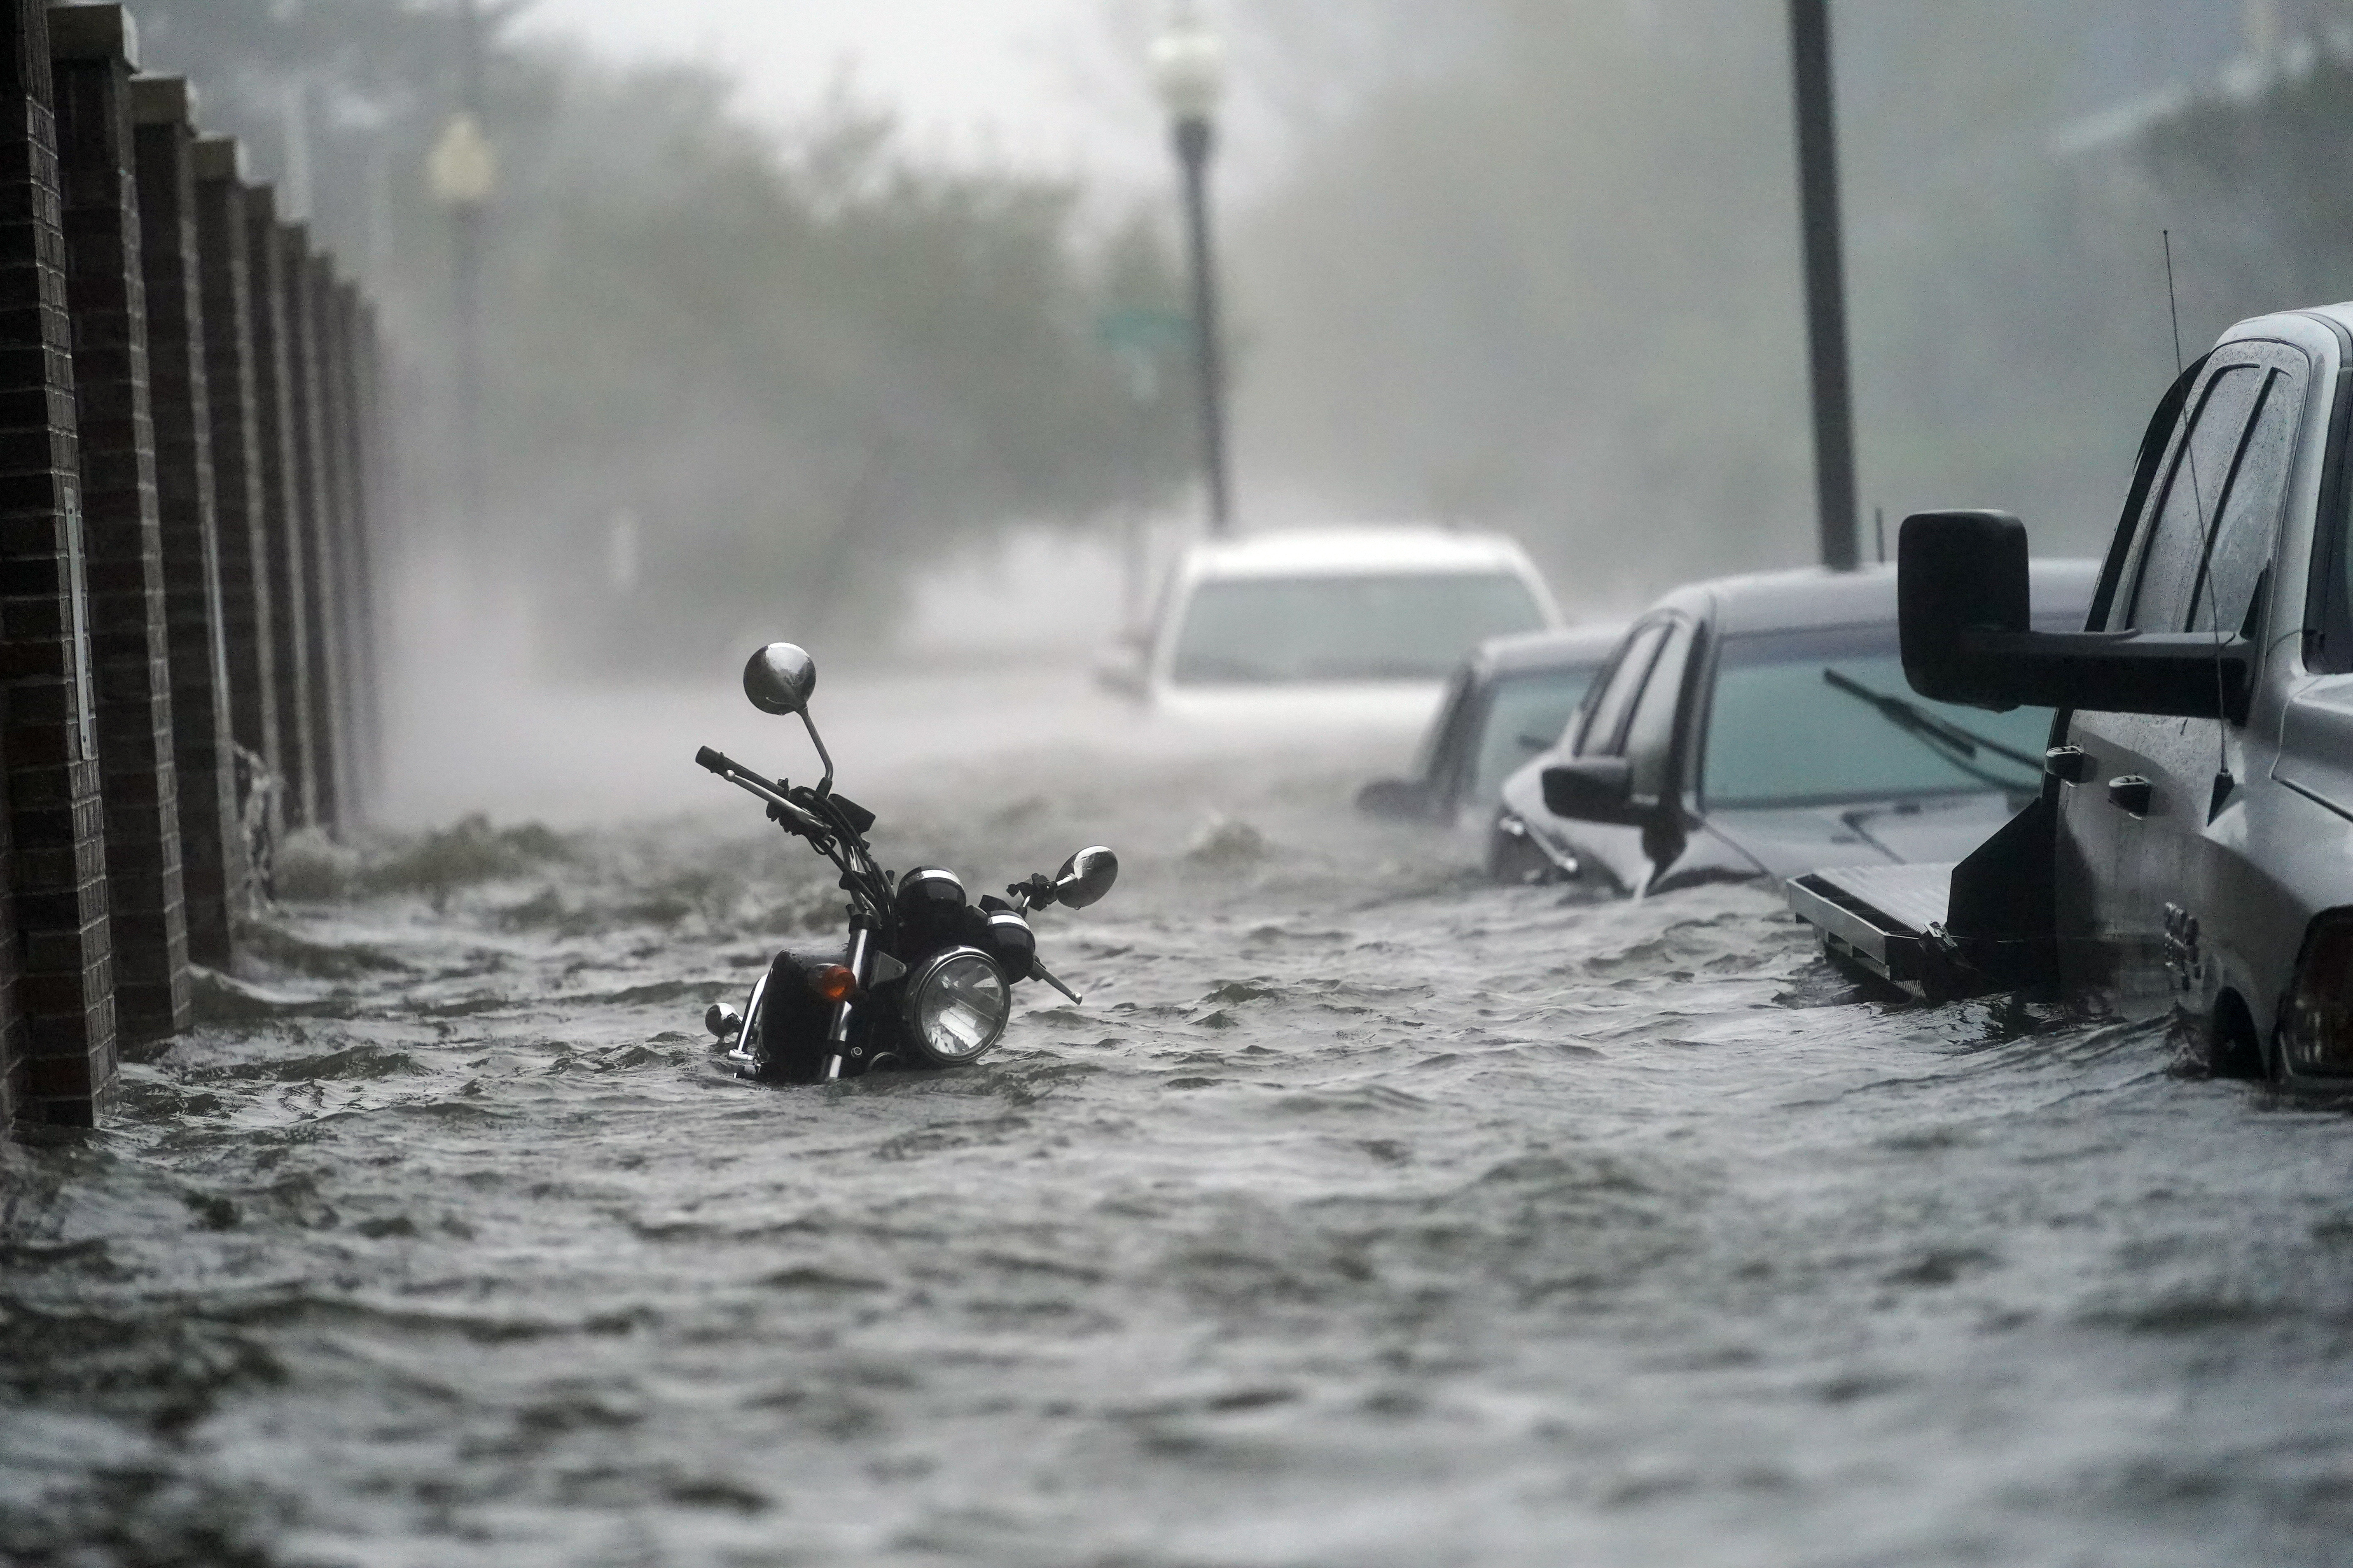 Floodwaters move on the street, Wednesday, Sept. 16, 2020, in Pensacola, Fla.